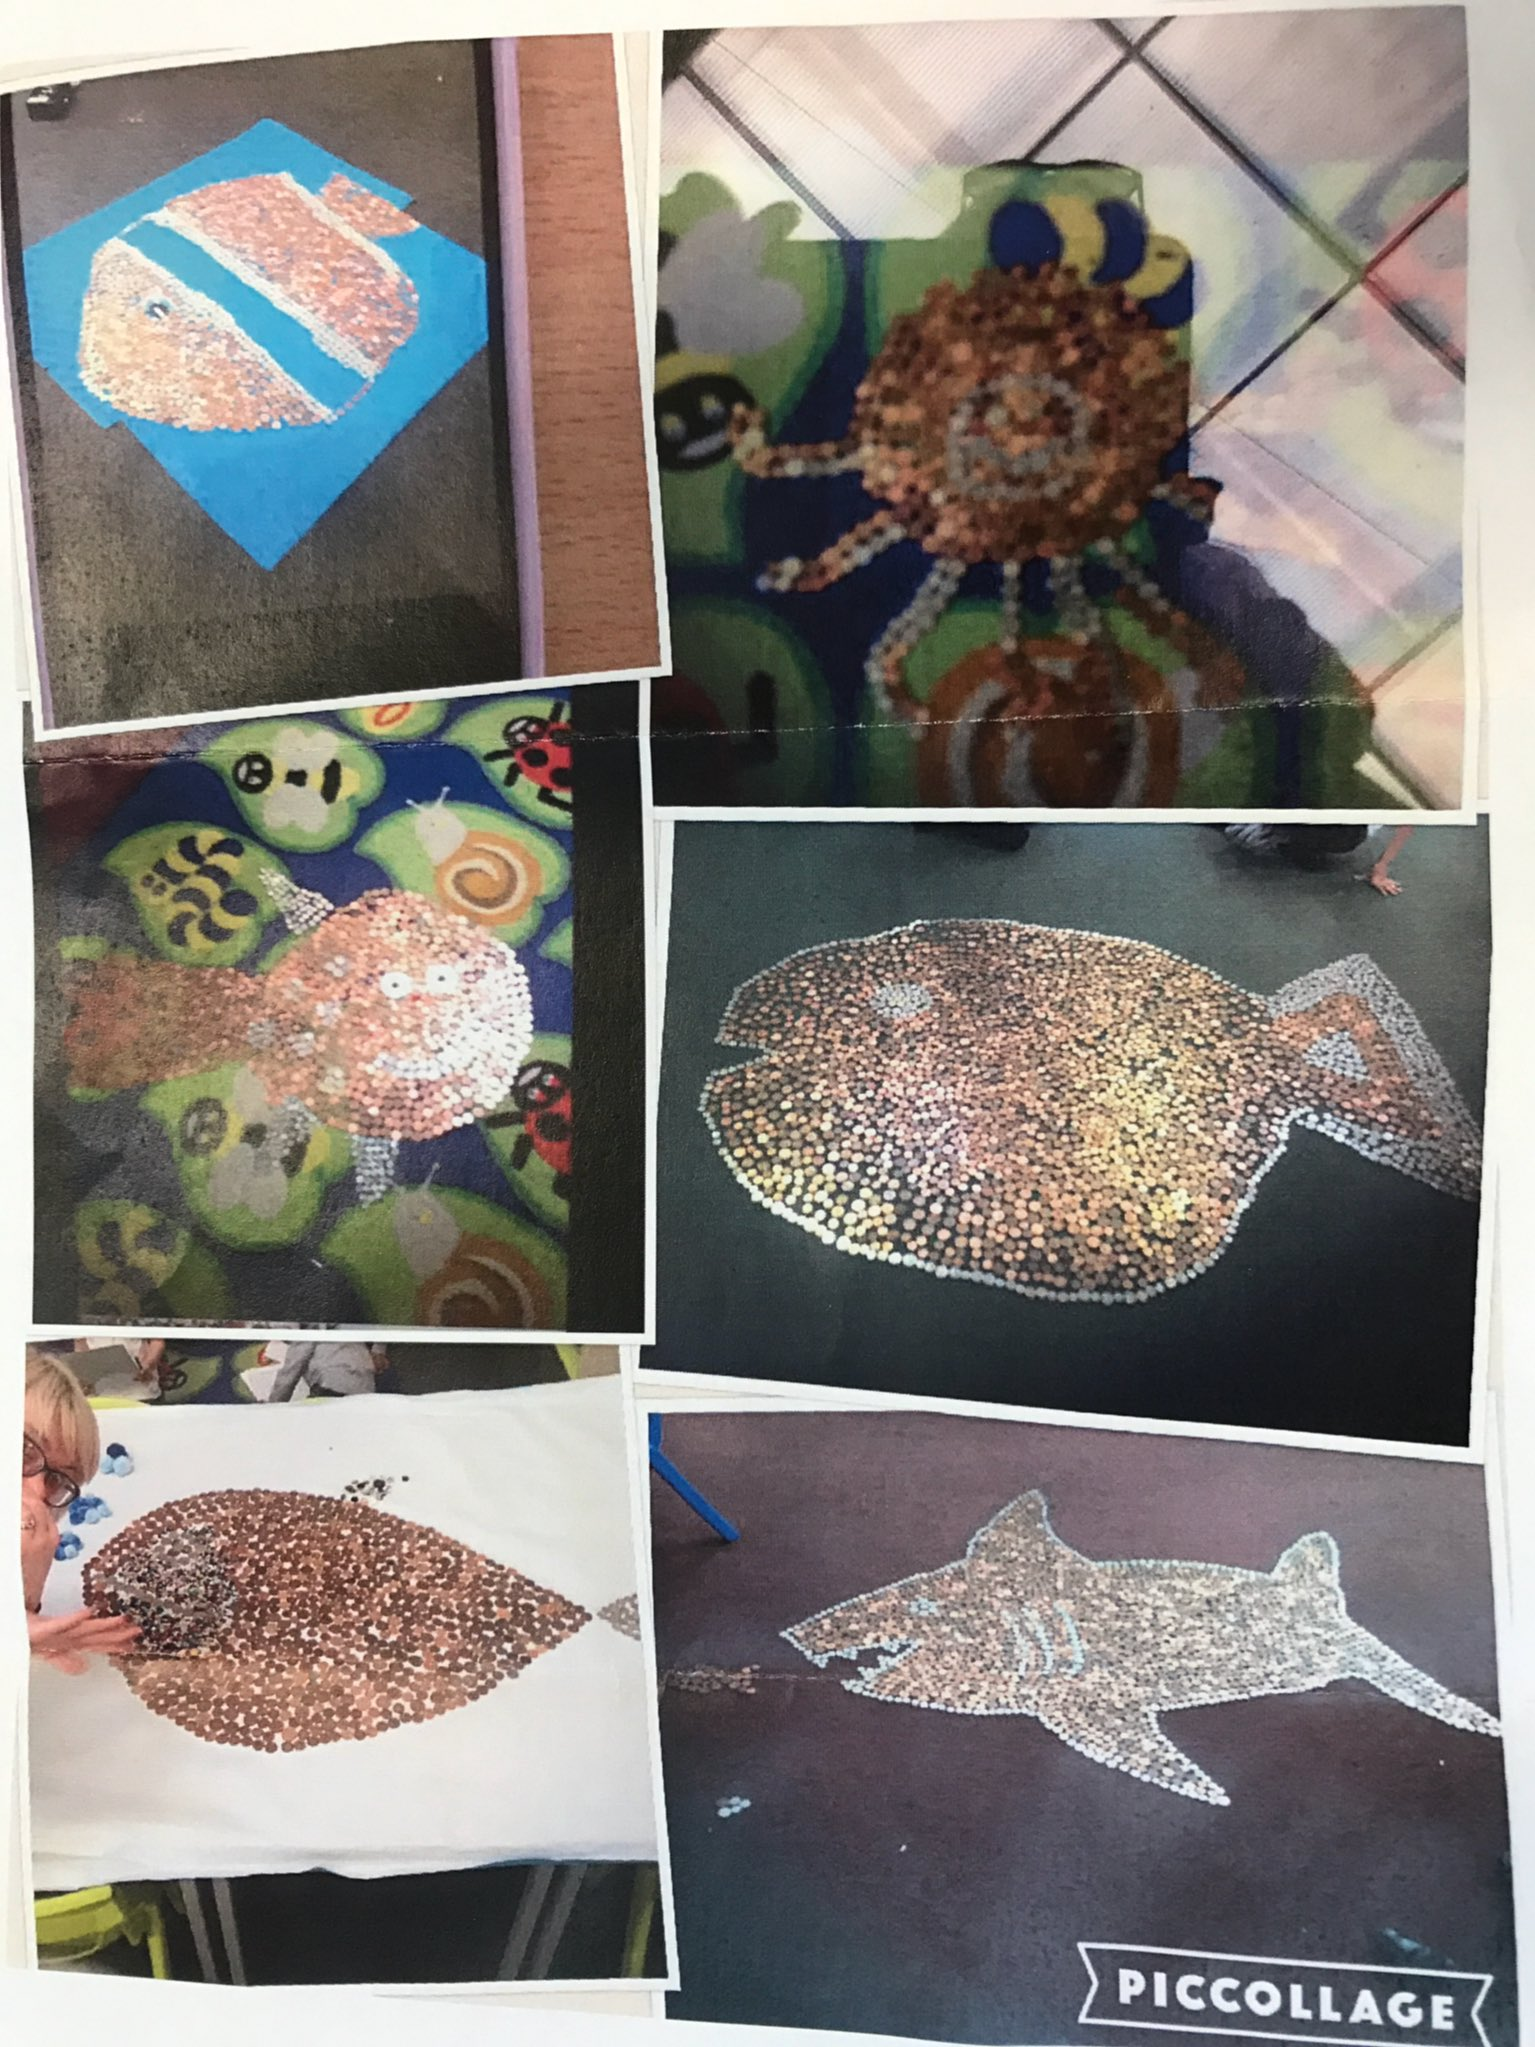 We've just received these fab photos from St Joseph's, Birmingham, who raised £390.06 for the Lent #BigFish appeal. Thank you! https://t.co/x0q69eVSEq